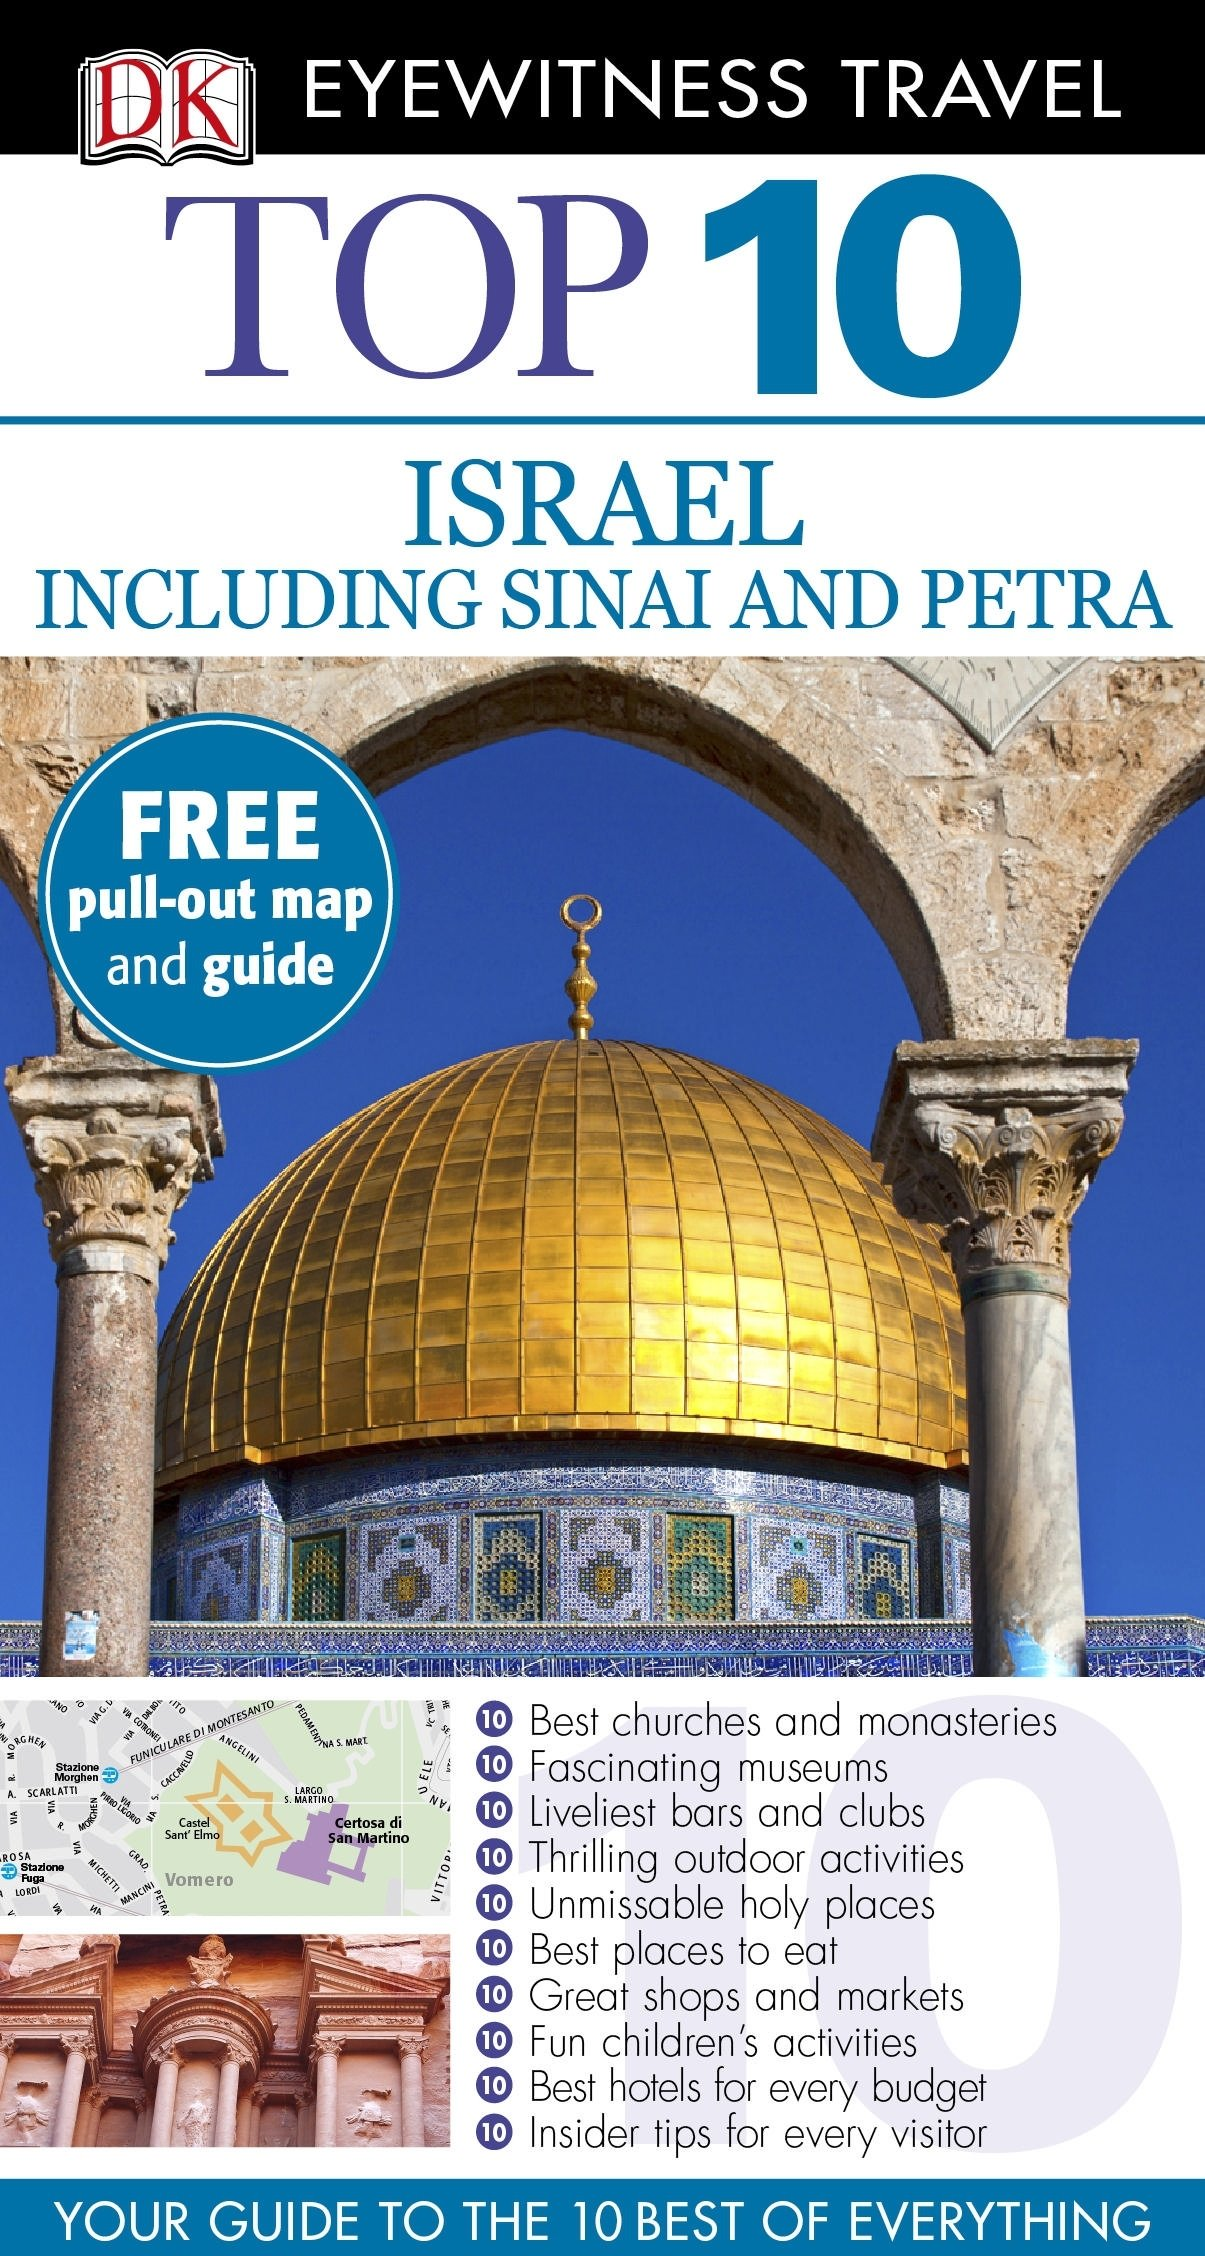 Top 10 Israel including Sinai and Petra (DK Eyewitness Travel Guide)